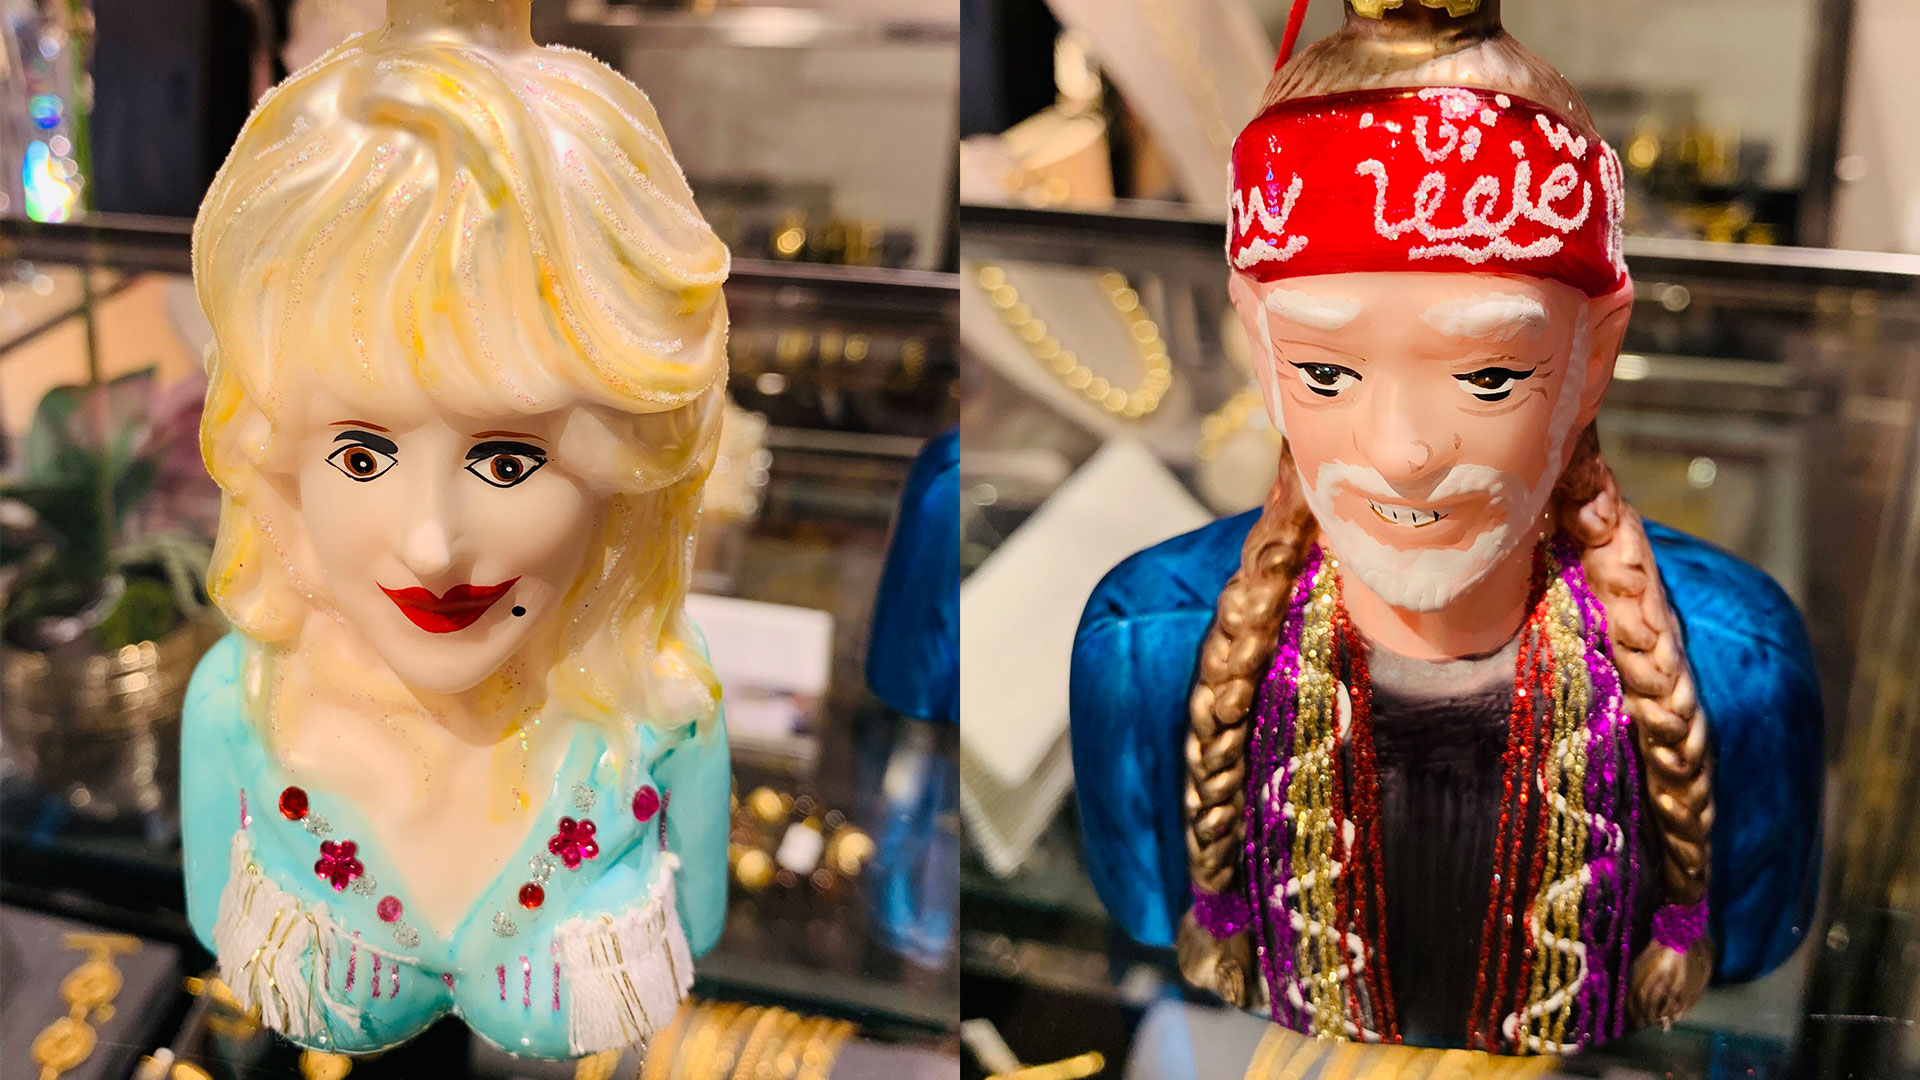 This Dolly Parton Ornament is What Your Christmas Tree Needs This Year